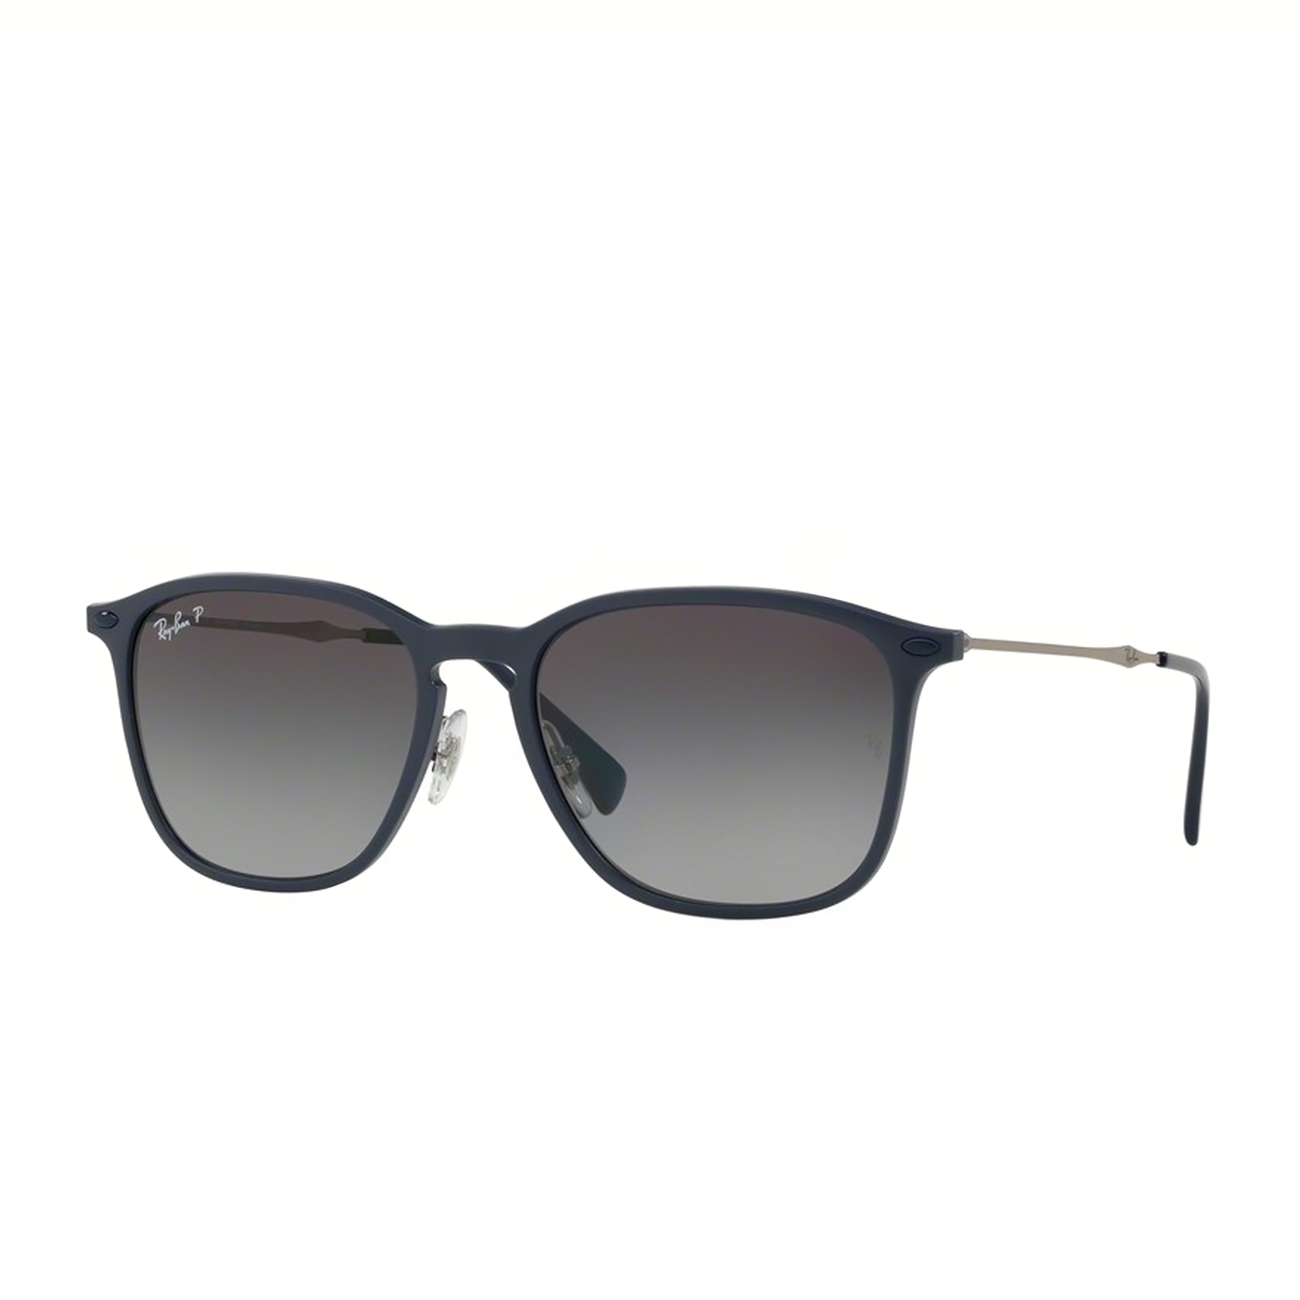 RAY BAN 0RB83536353T356 SUNGLASSES WITH A FRAME MADE OF PLASTIC IN BLUE AND LENSES MADE OF POLICARBO imagine produs